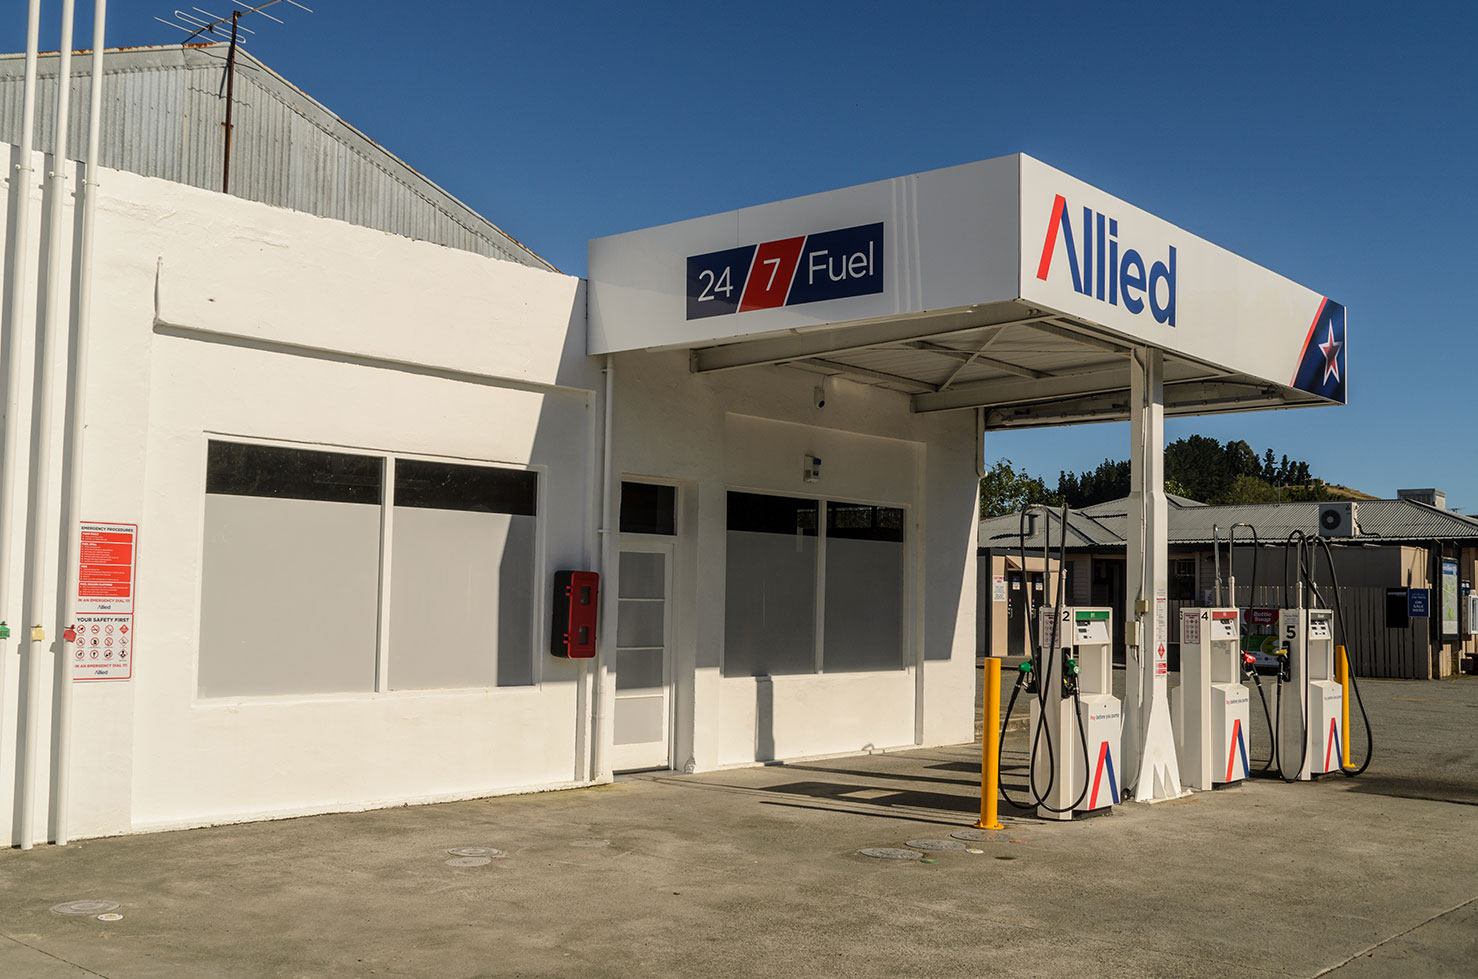 ALLIED PETROLEUM 24/7   Self-service pump.  27 Hall Street, Cheviot  Phone:  0800 383 566  Email:   philyn@xtra.co.nz